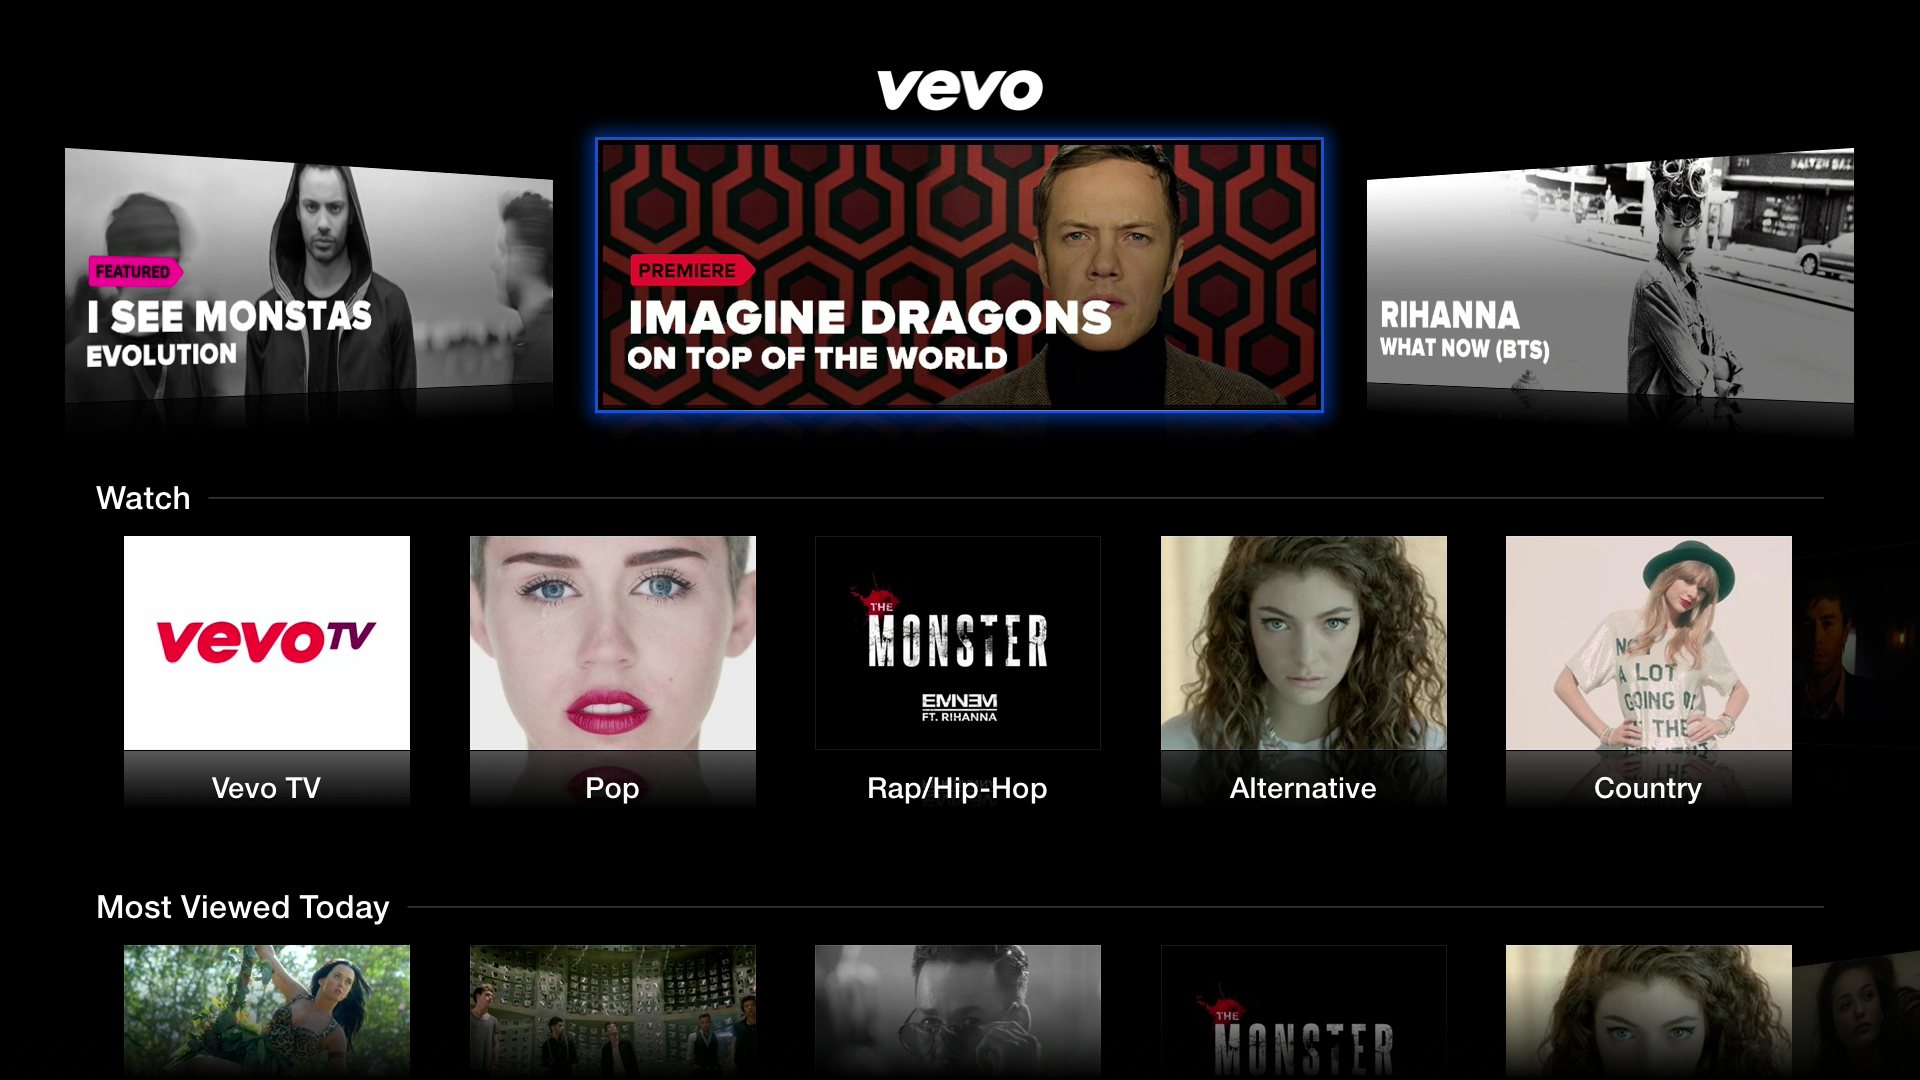 Figure 4: Vevo offers an extensive music video library, including a number of genre stations.